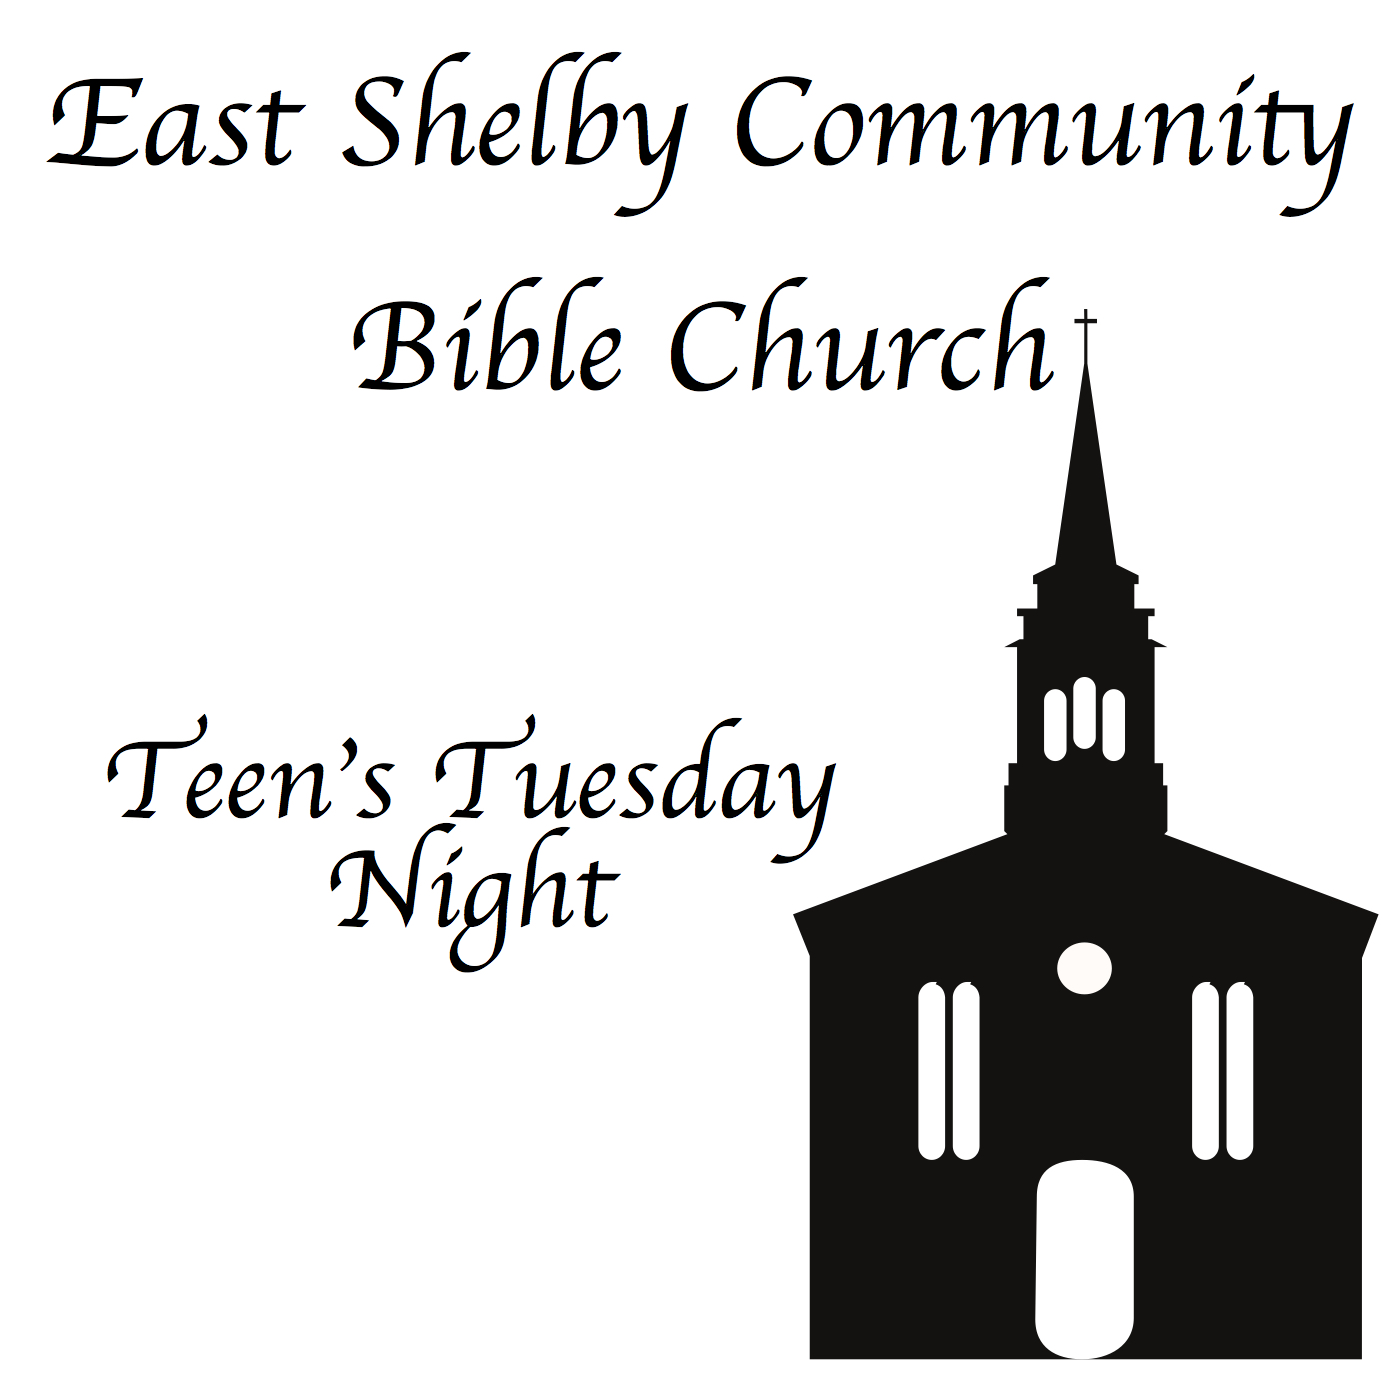 Teen Bible Study - East Shelby Community Bible Church